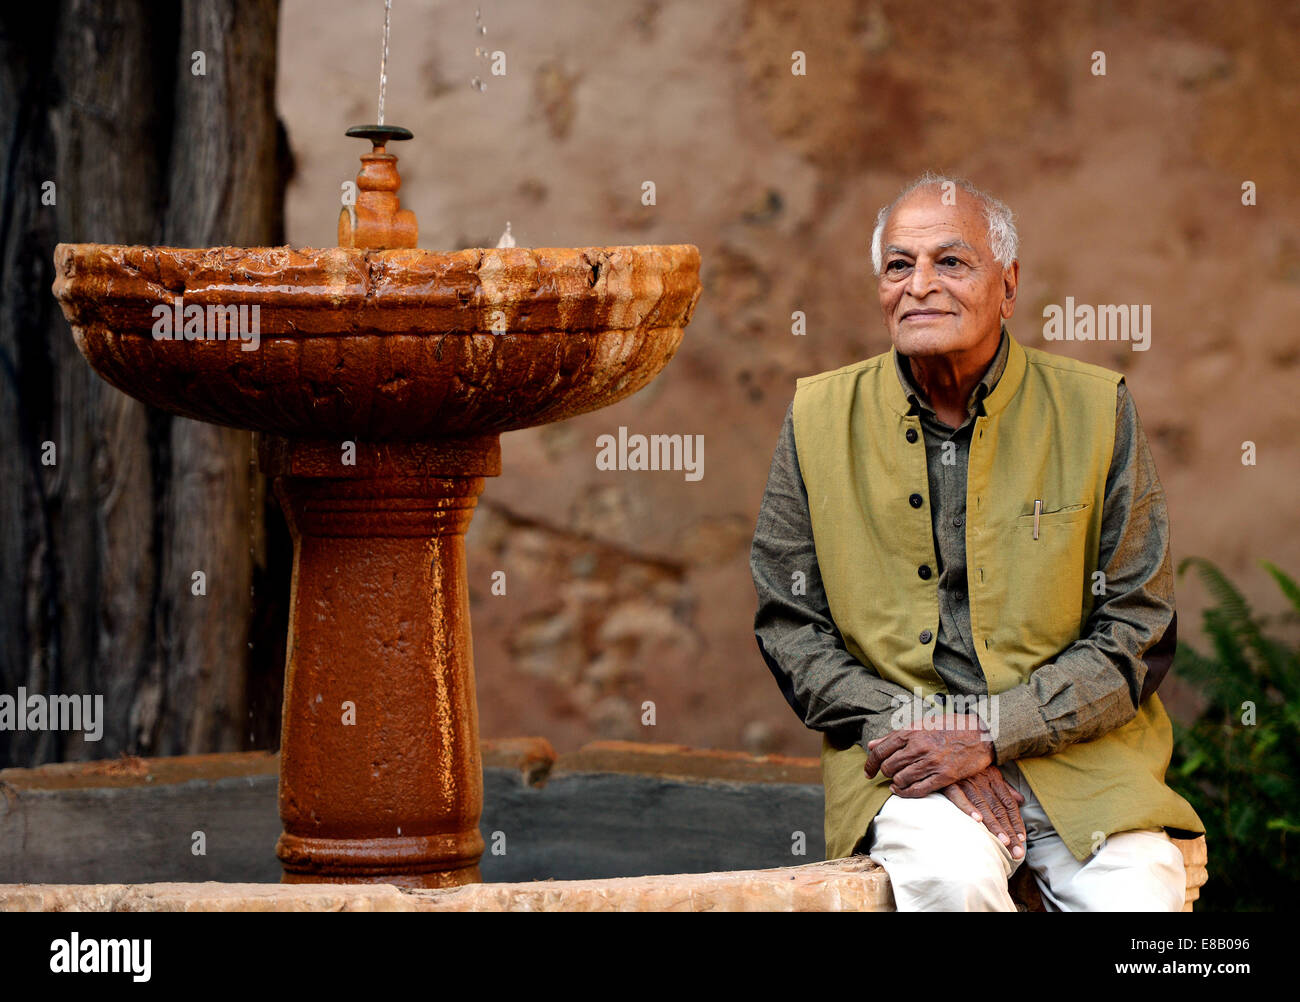 The Indian activist Satish Kumar gives a speech in Mallorca of the education of children and schools. - Stock Image